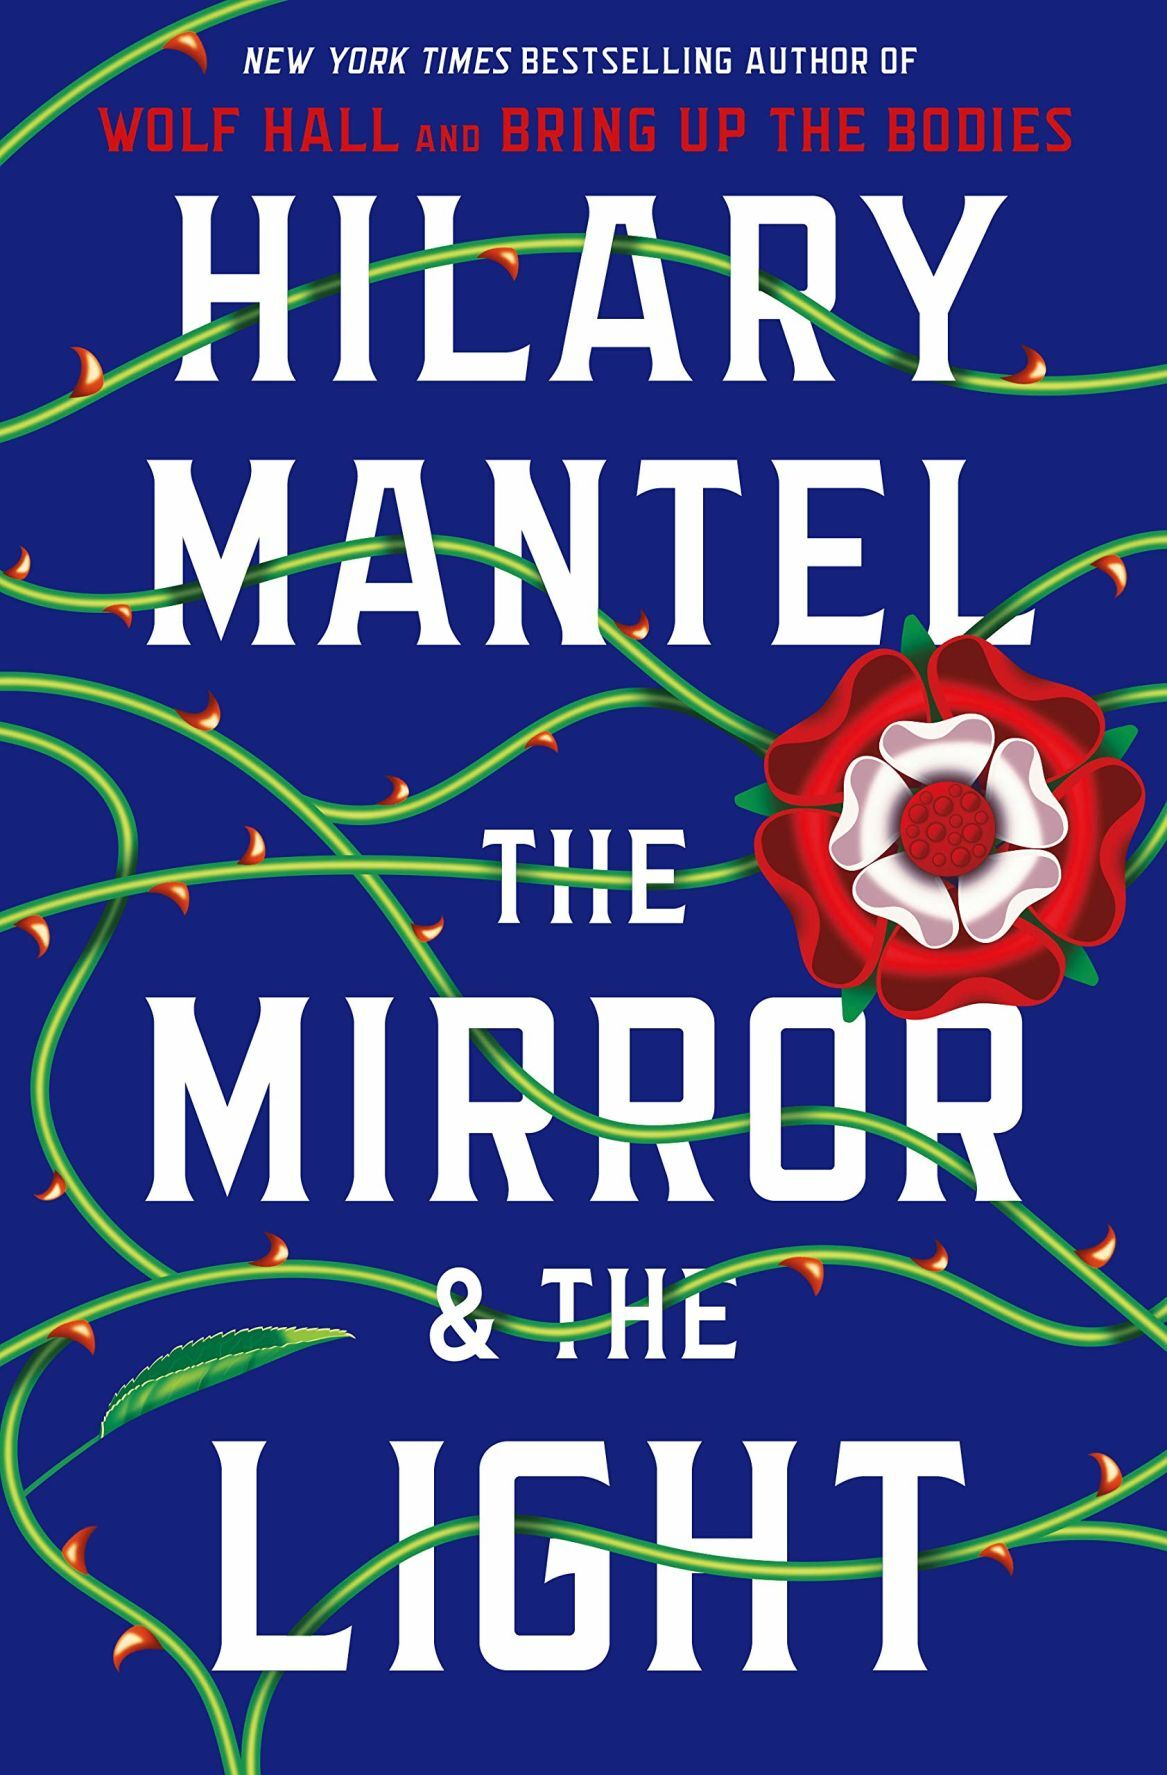 'The Mirror & the Light'